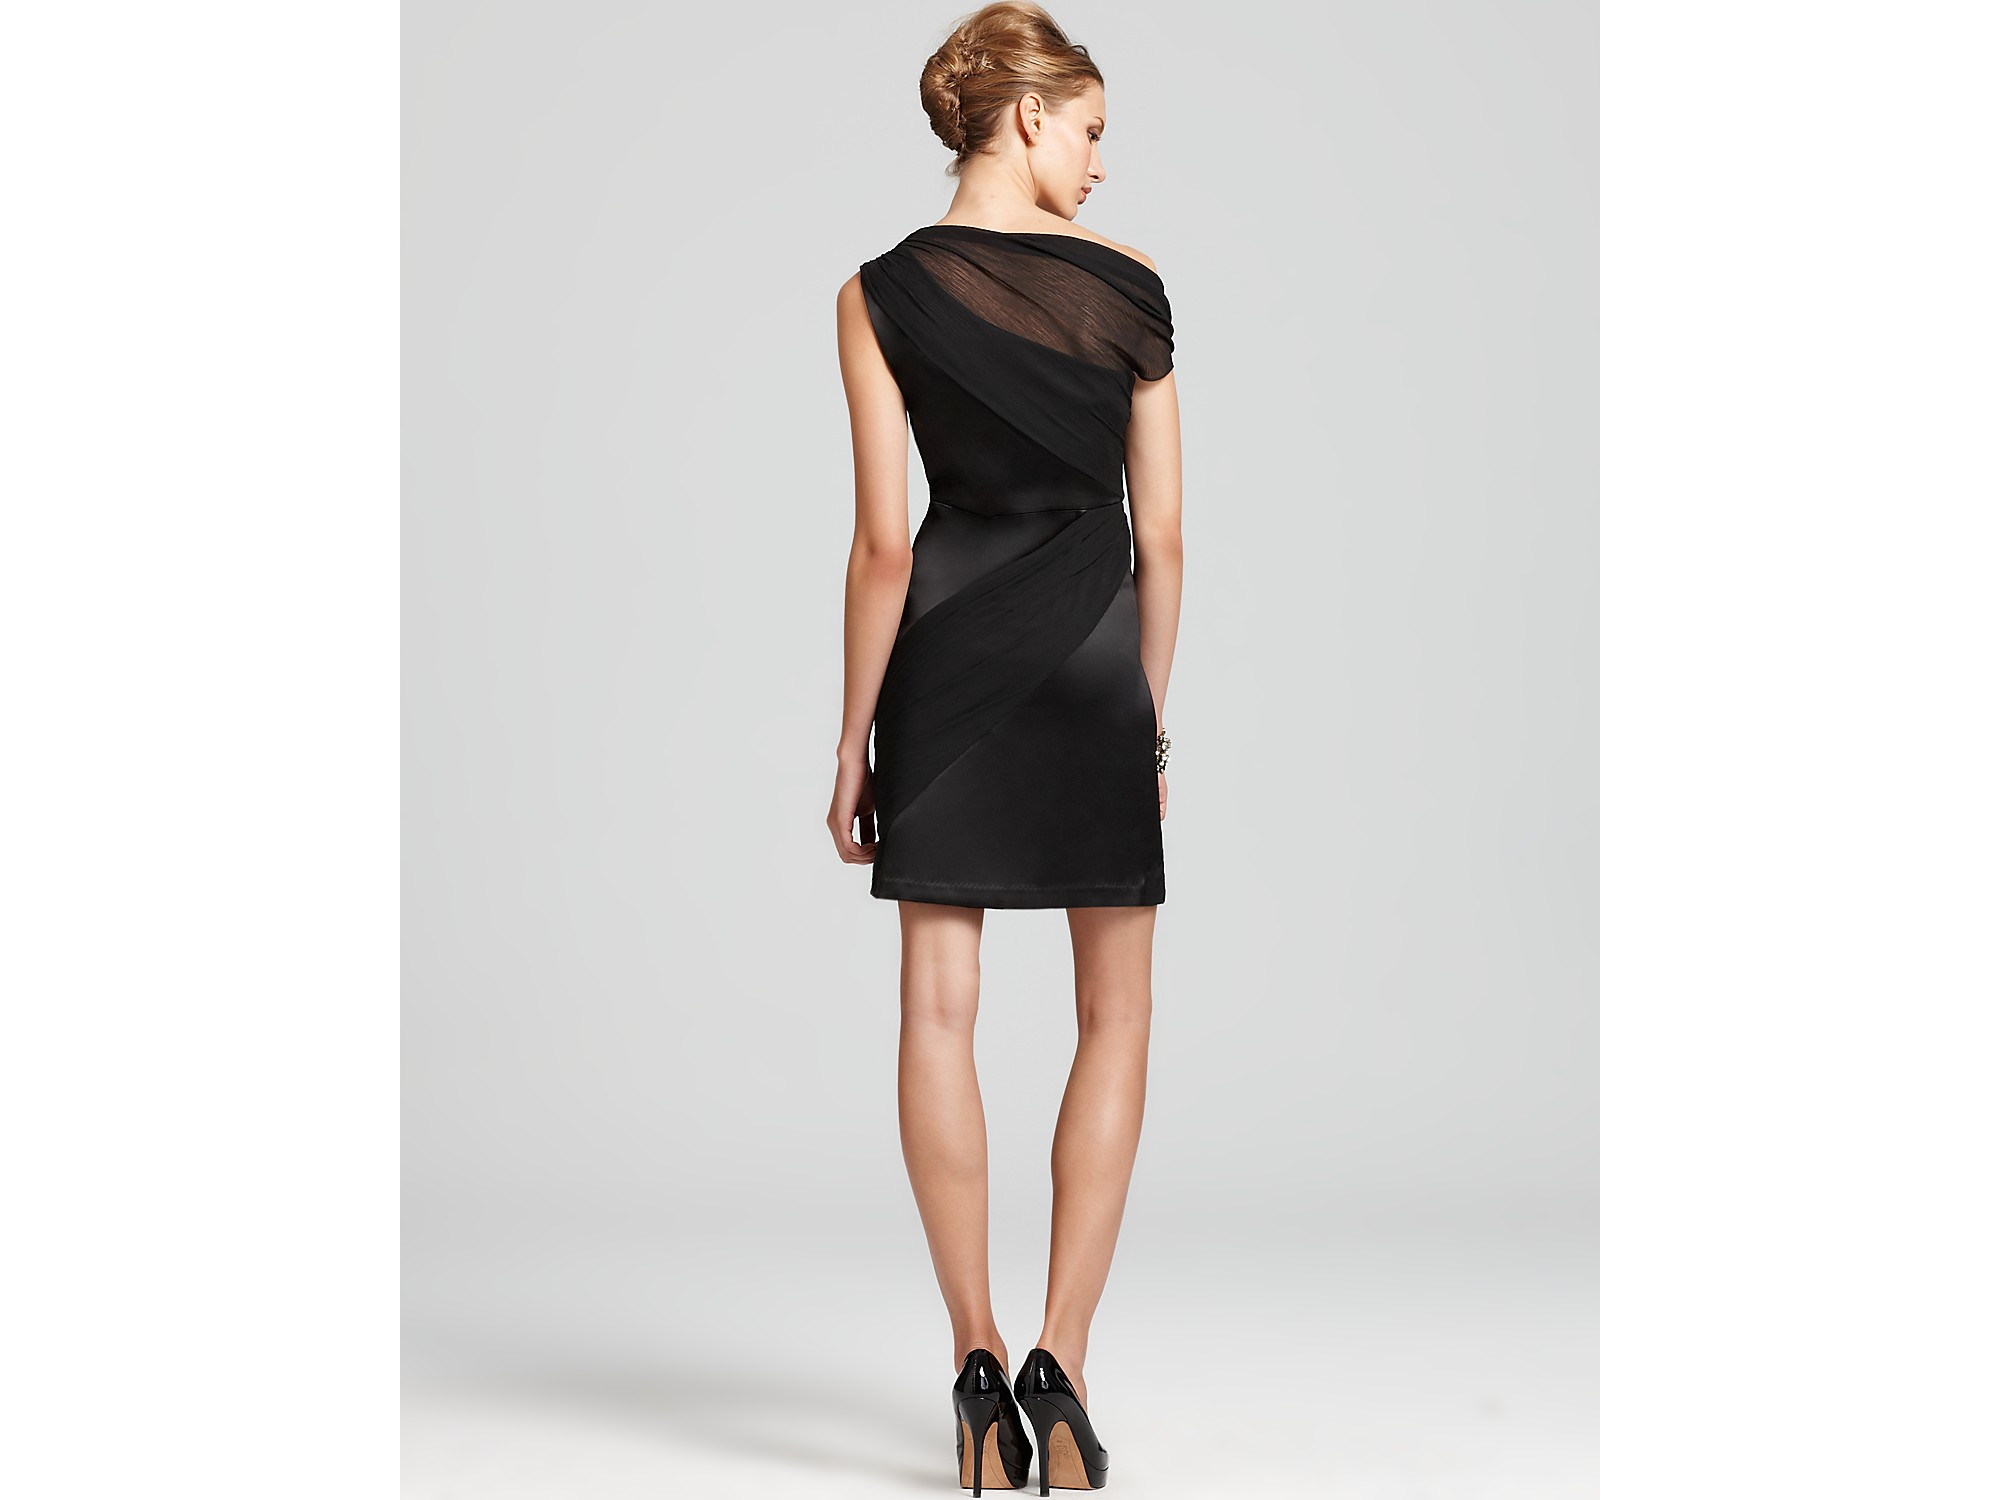 Lyst - Max & Cleo Off The Shoulder Cocktail Dress in Black